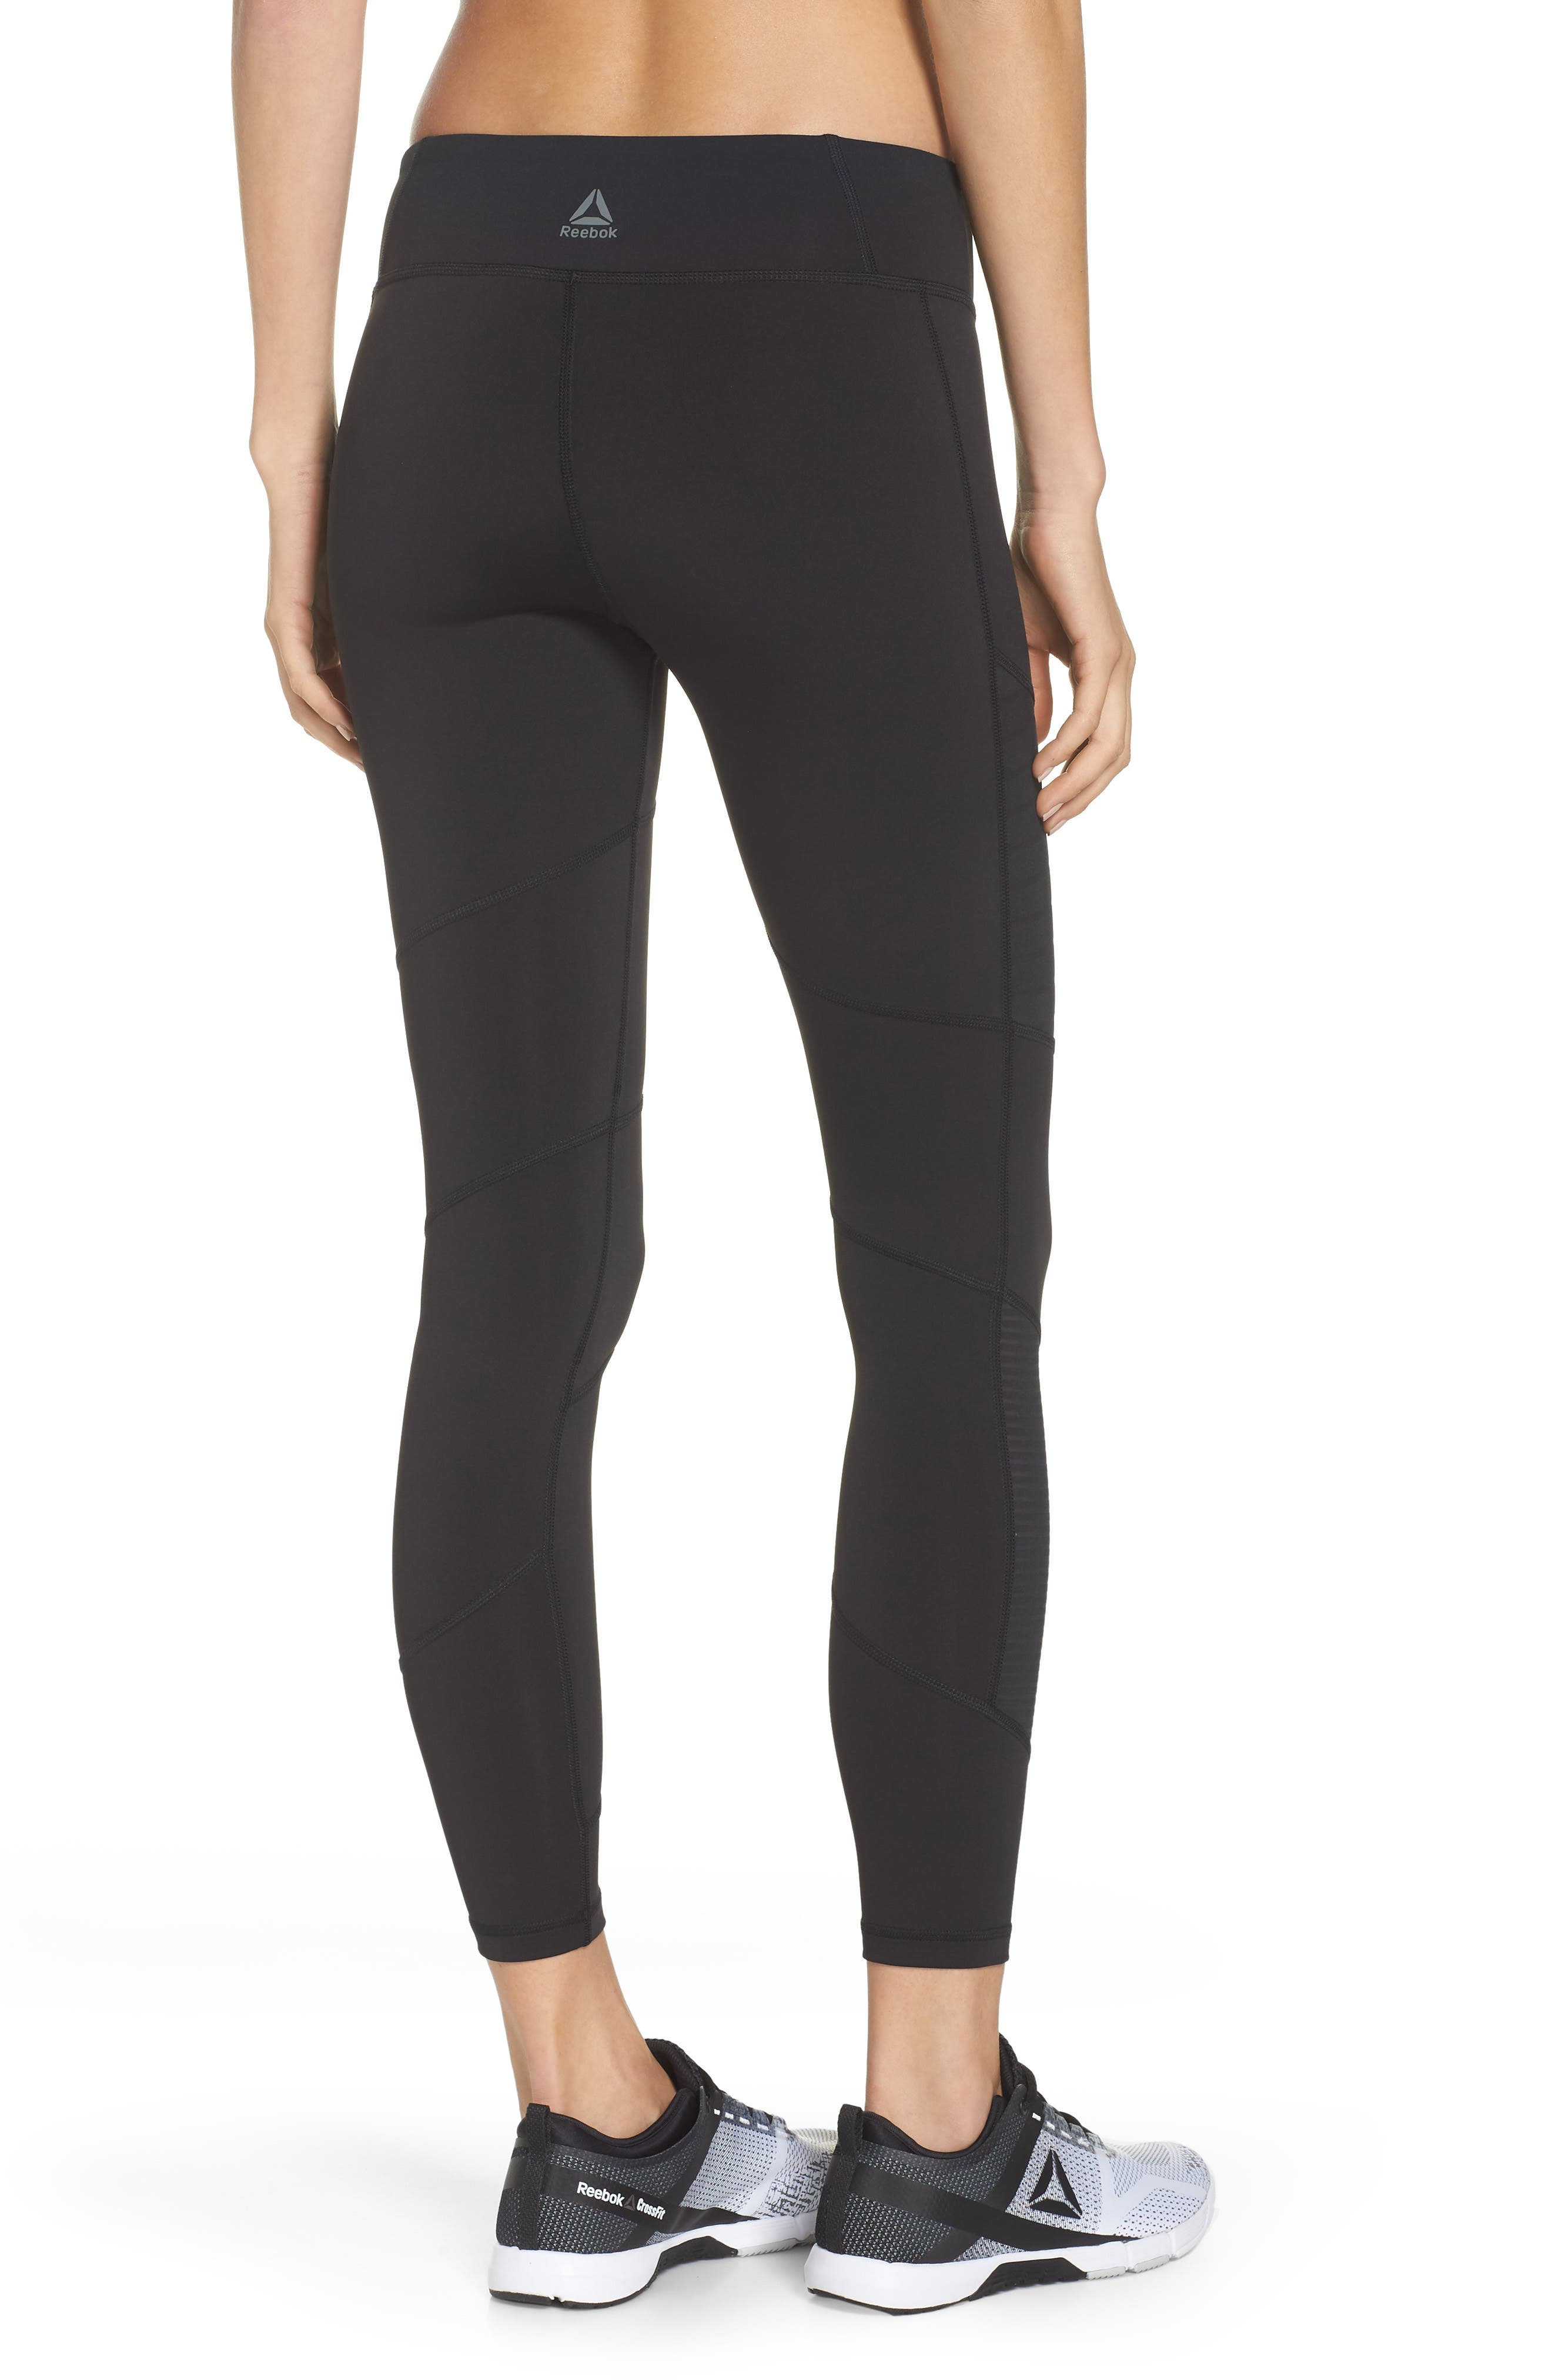 Mesh Leggings,                             Alternate thumbnail 2, color,                             005